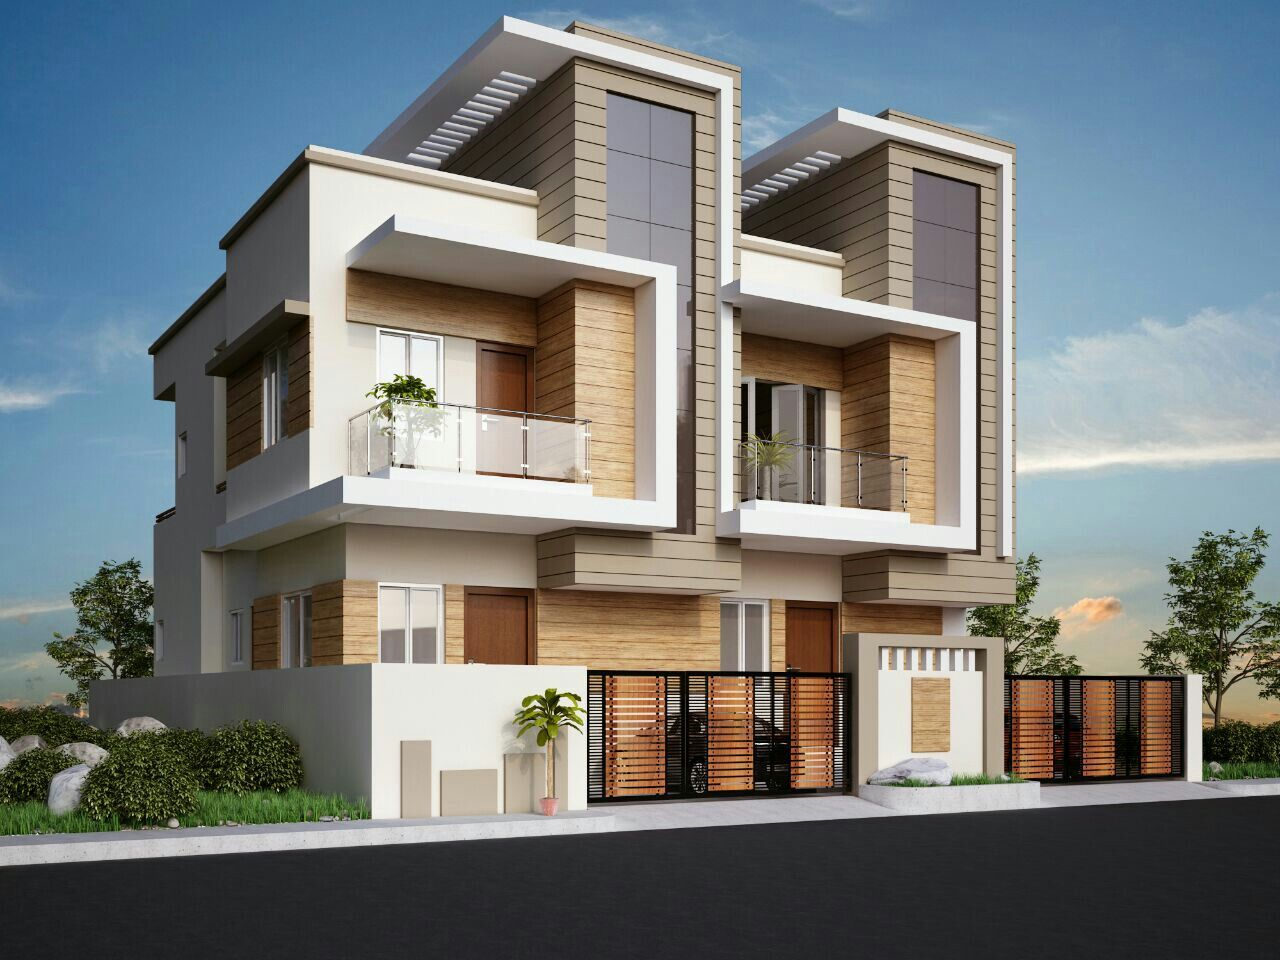 A Twin Bungalows Row Housing In 2019 Row House Design Bungalow